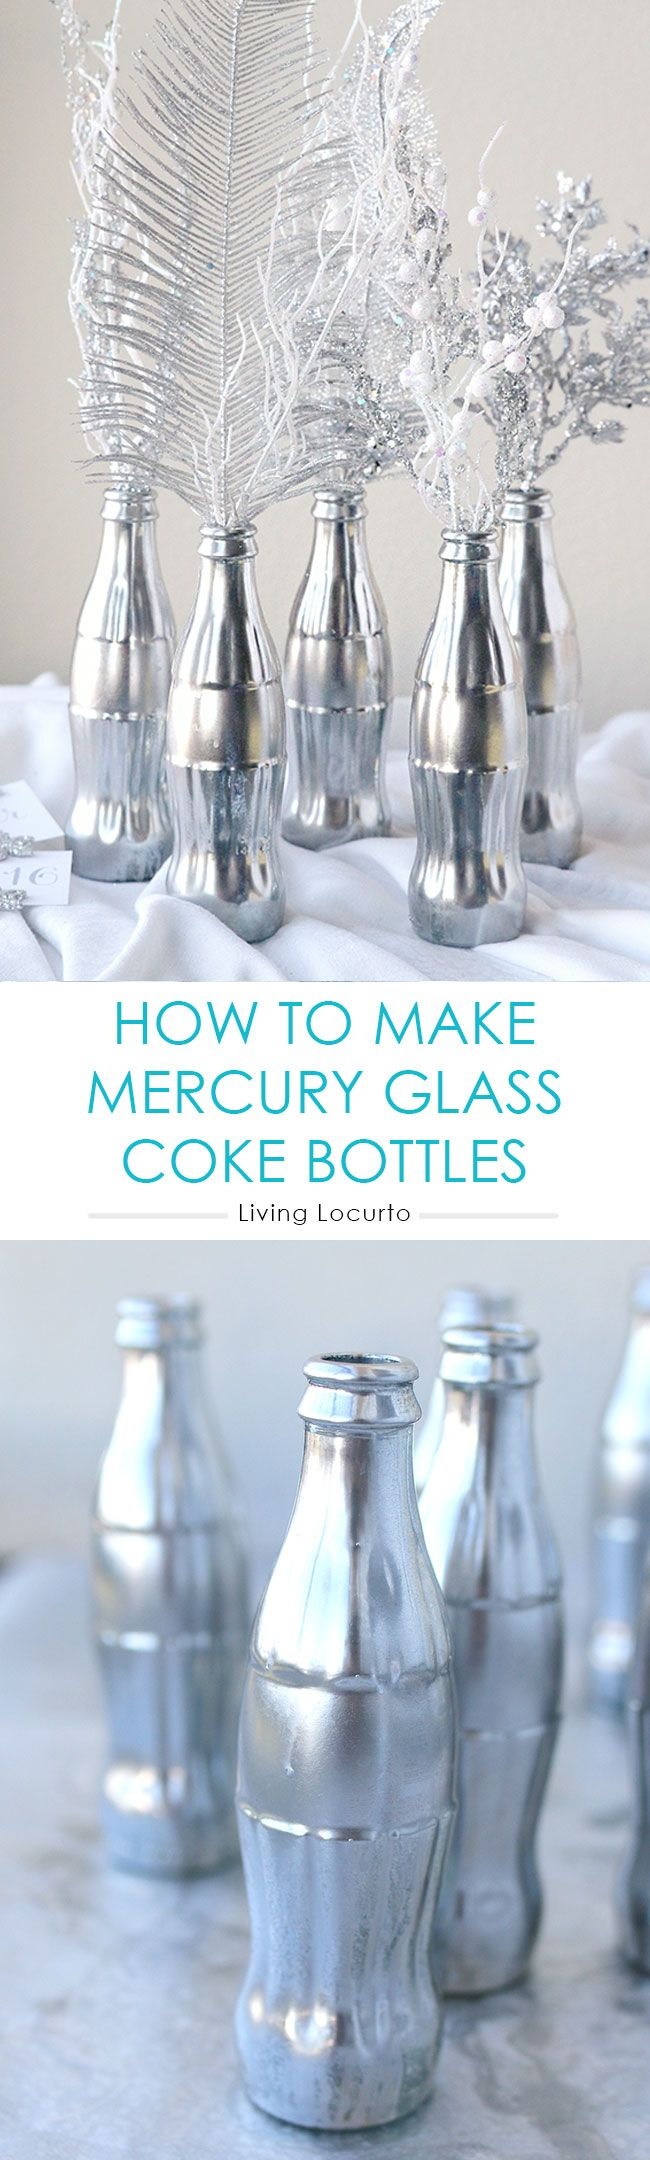 How To Make A Mercury Glass Coke Bottles Easy Diy Craft Idea For